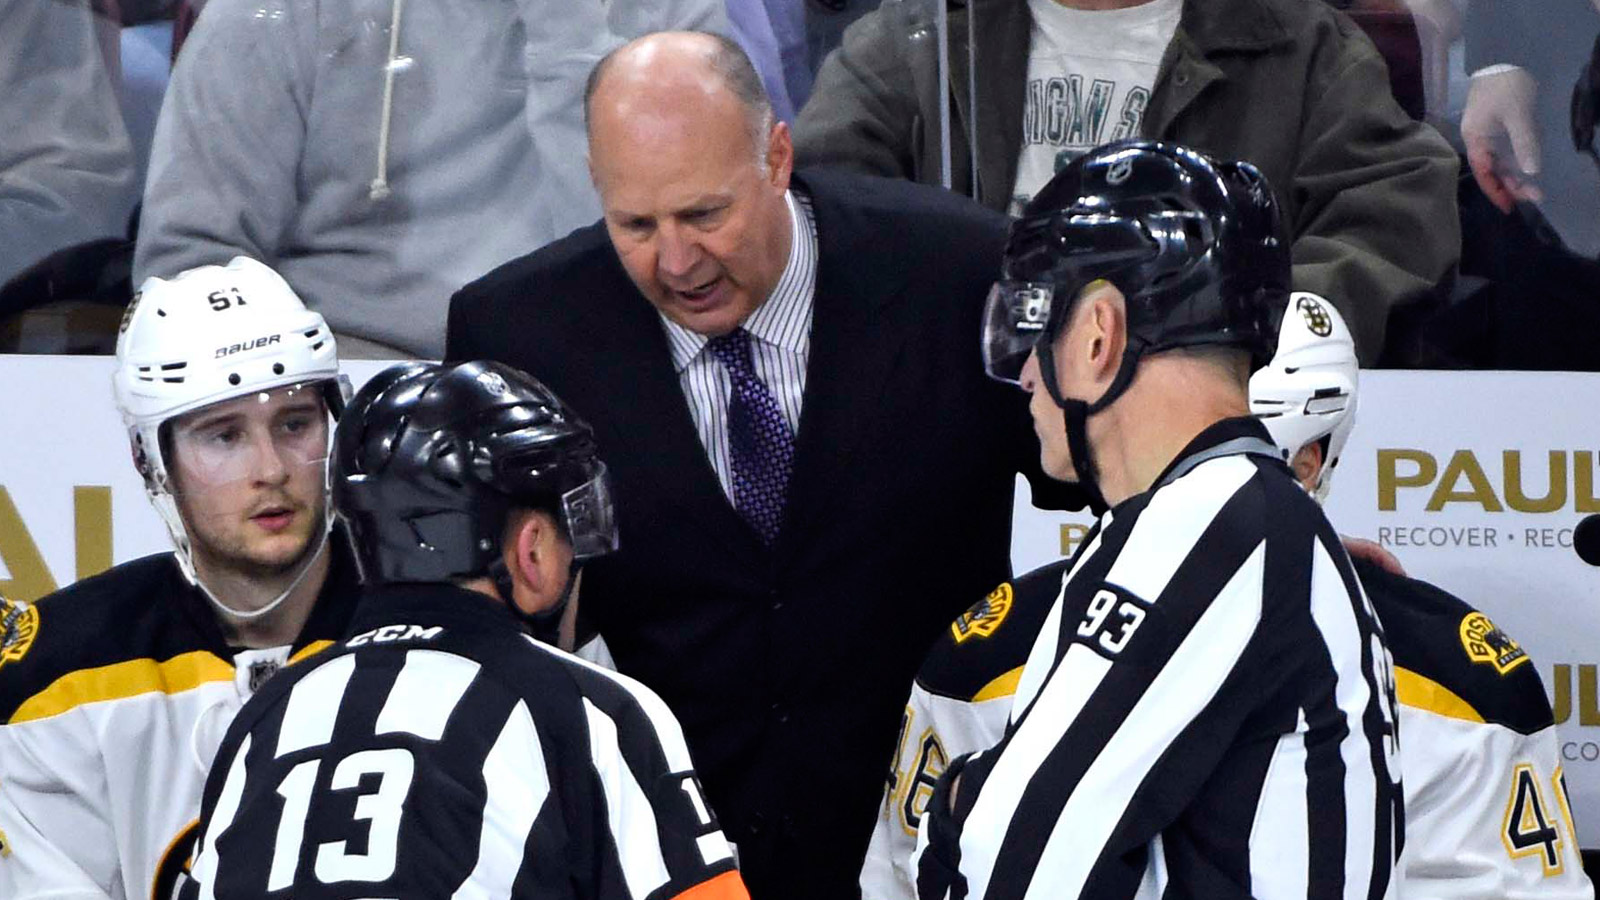 Bruins coach Claude Julien rages against NHL replay system after controversial call